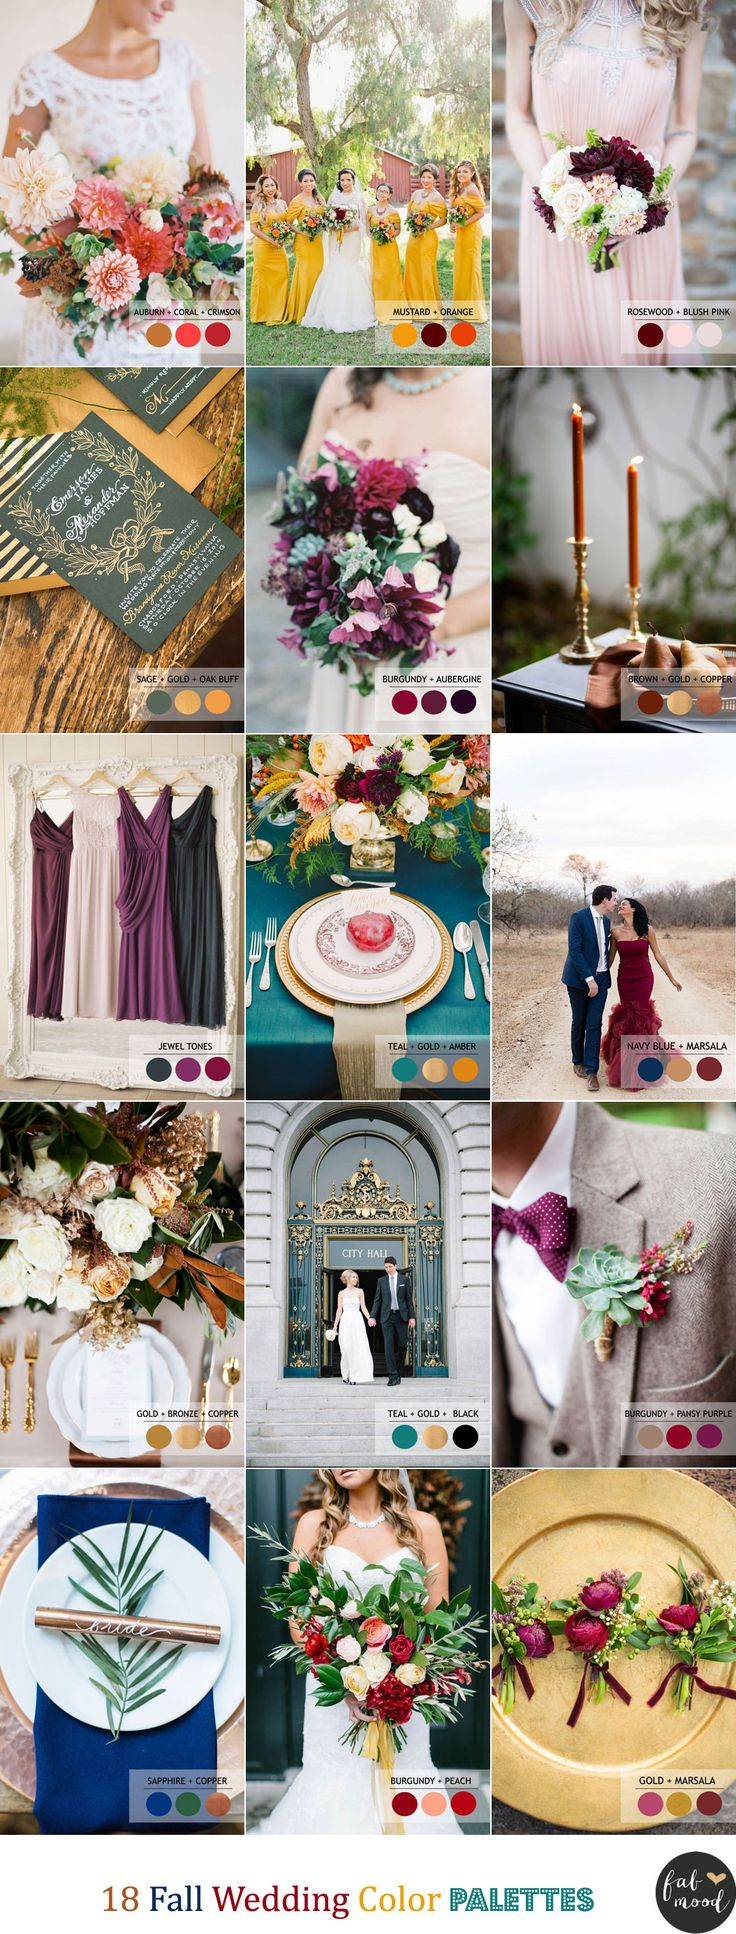 18 Fall Wedding Color Palettes | Autumn wedding colour combinations | http://www.fabmood.com/18-fall-wedding-color-palettes/ #fallweddingtheme #fallwedding: